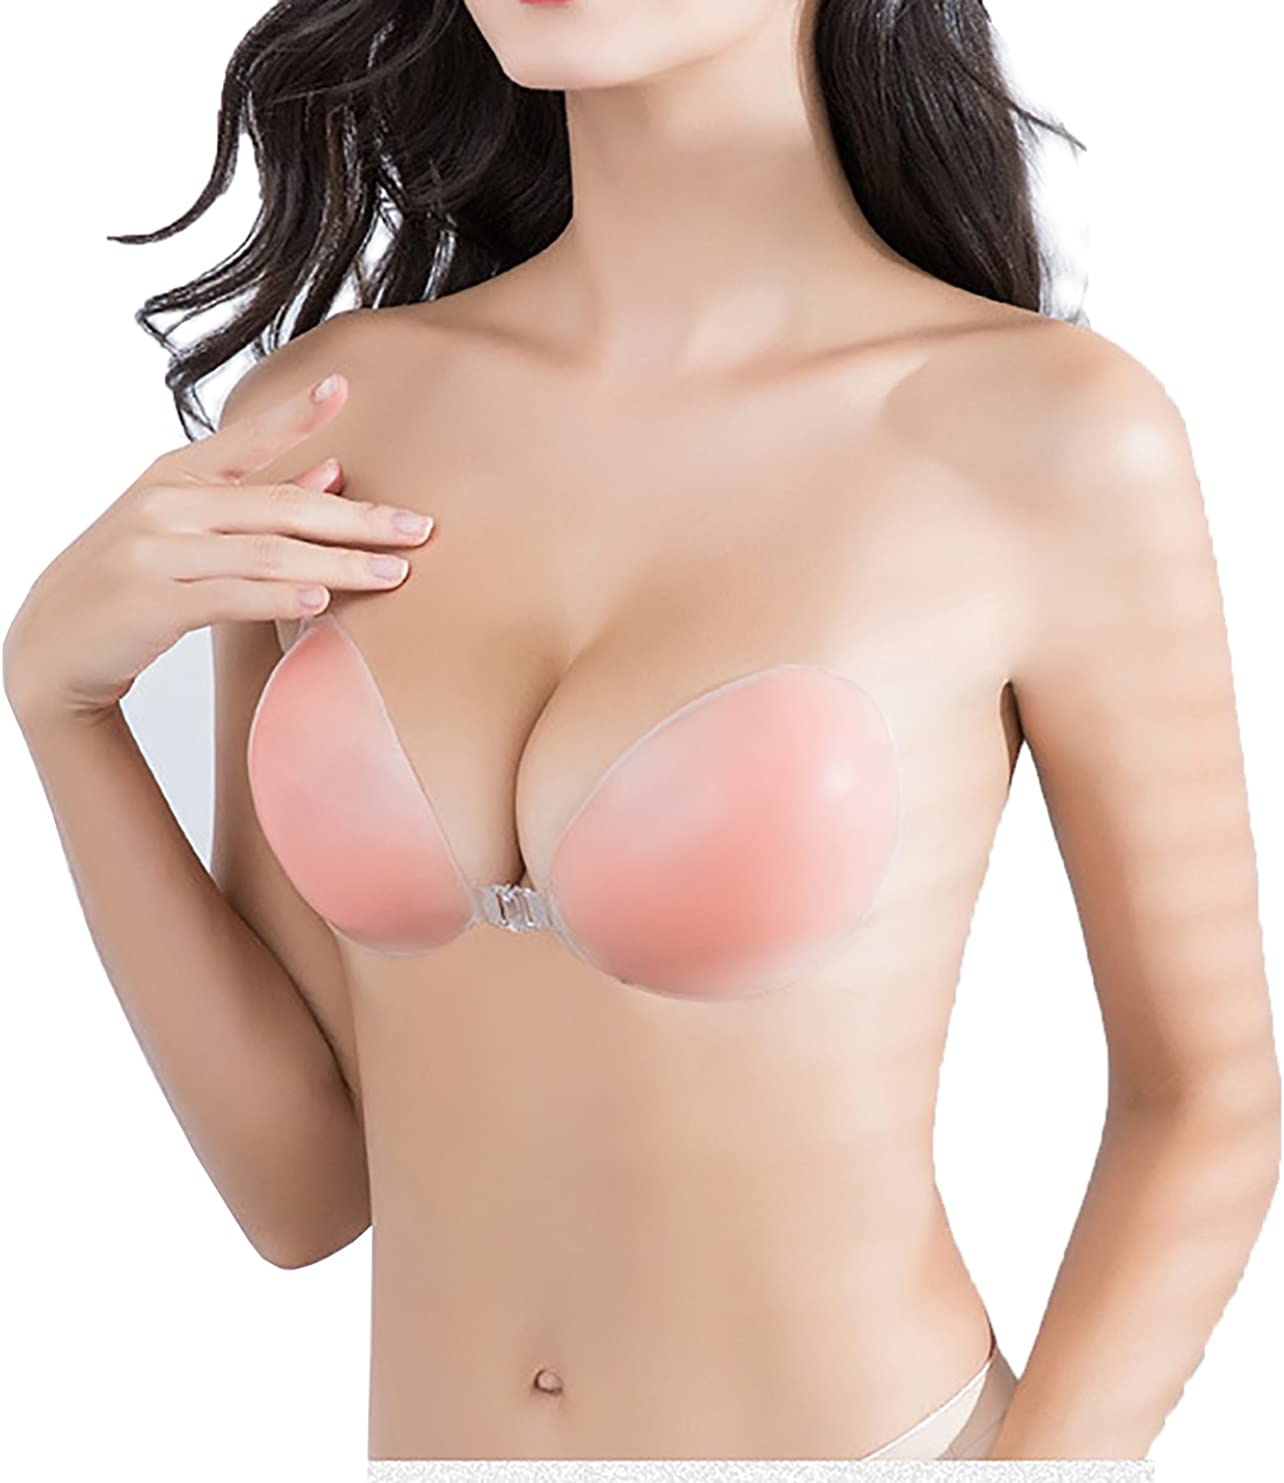 XiaLisi Adhesive Bra Strapless Sticky Invisible Push up Silicone Bra for Backless Dress with of Silicone Nipple Covers Nude, A-Double Thickness